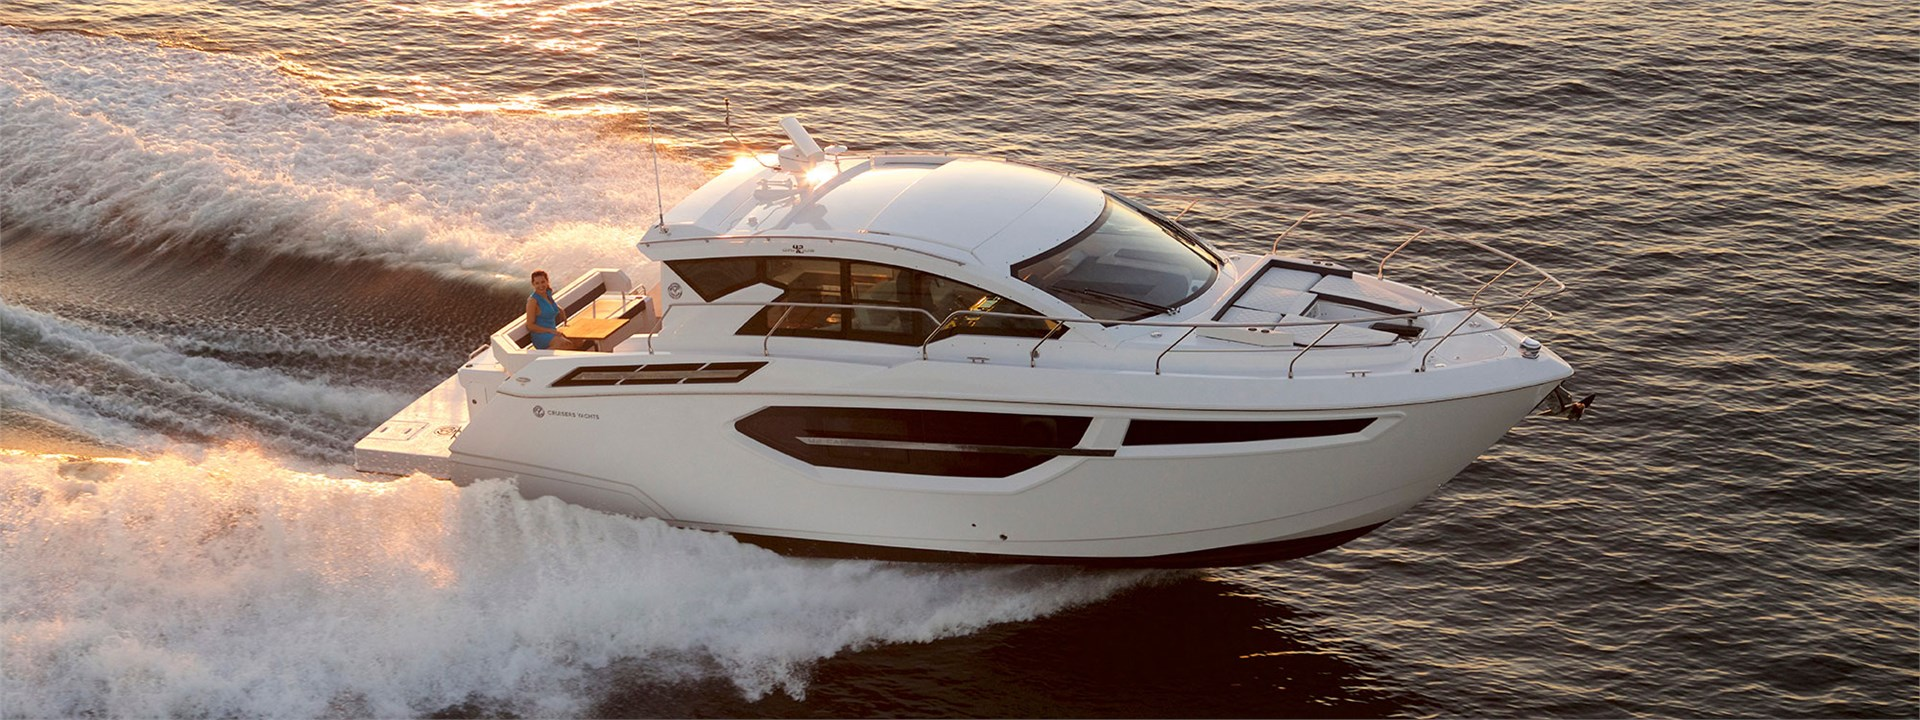 Water Shot of a Cruiser Yachts 42 Cantius